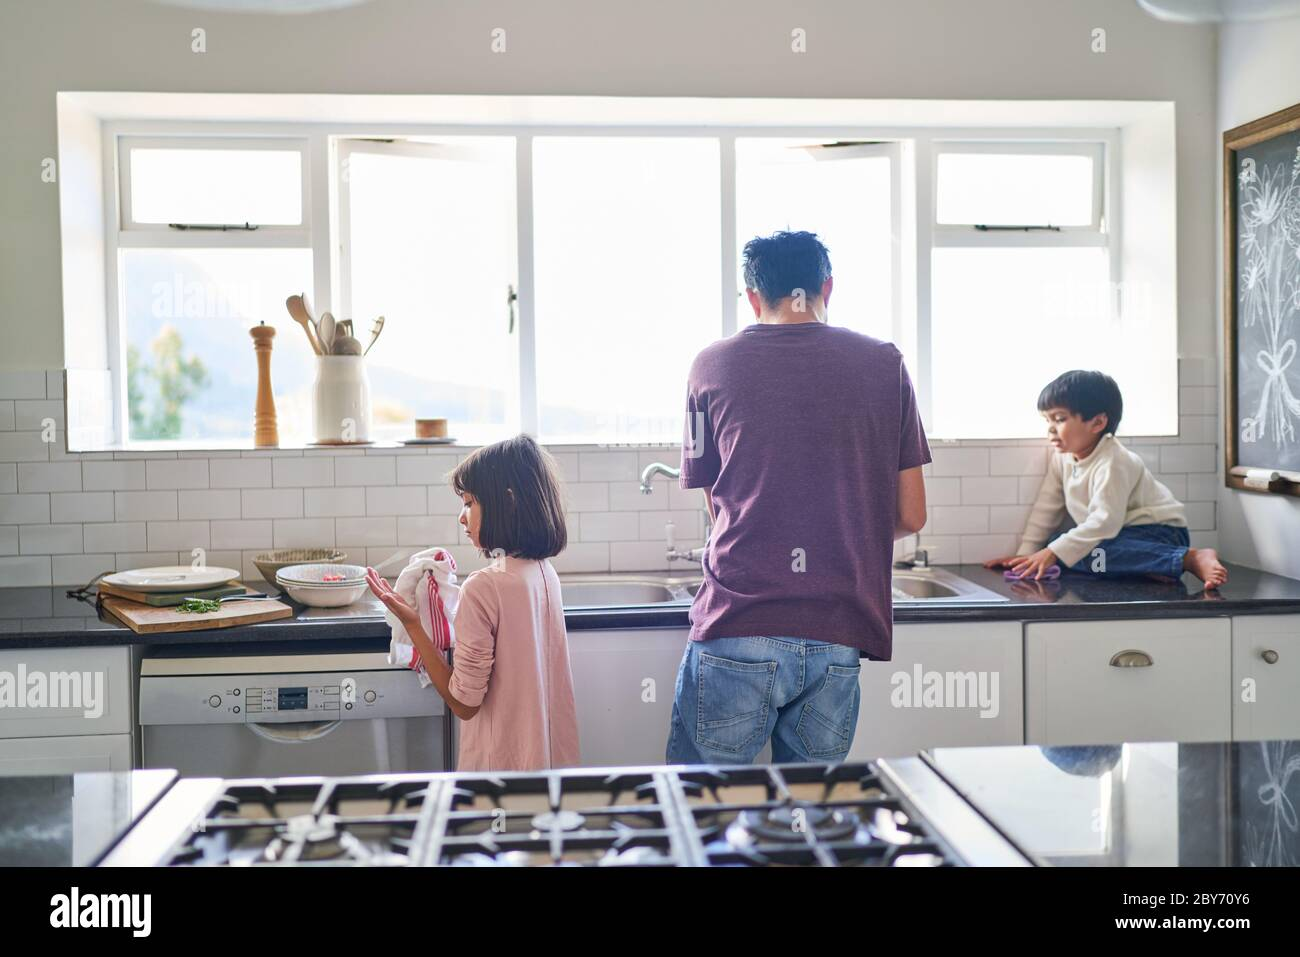 Family doing dishes at kitchen sink Stock Photo